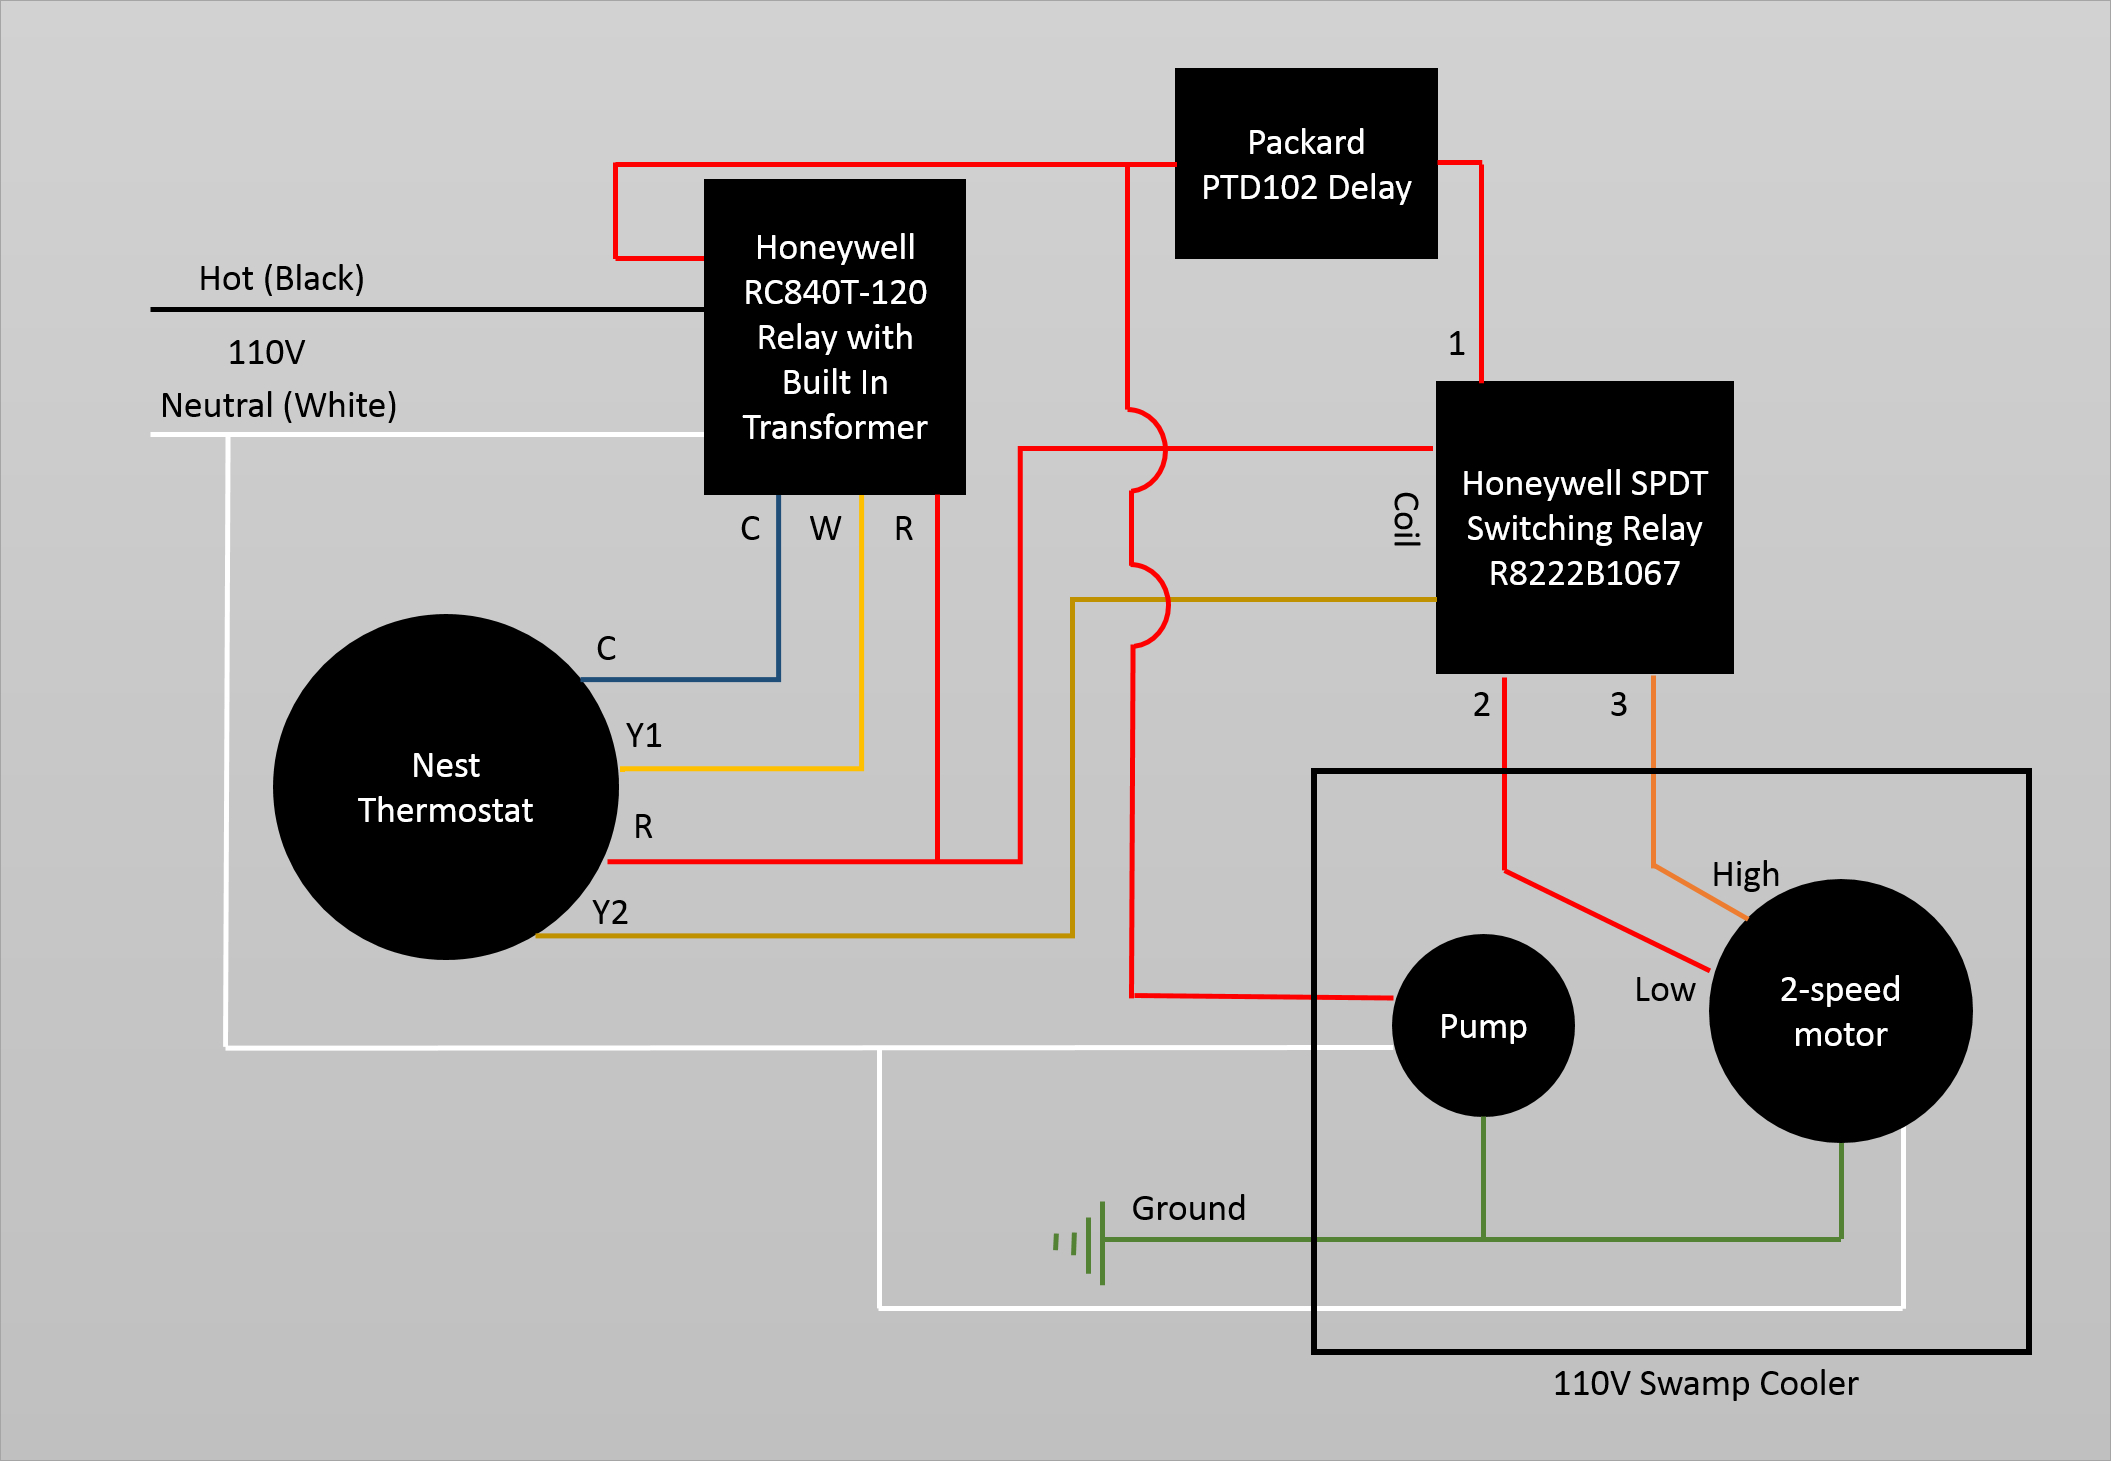 Wiring - Controlling 110V Swamp Cooler Using Nest Thermostat - Home - 1St Gen Nest Wiring Diagram